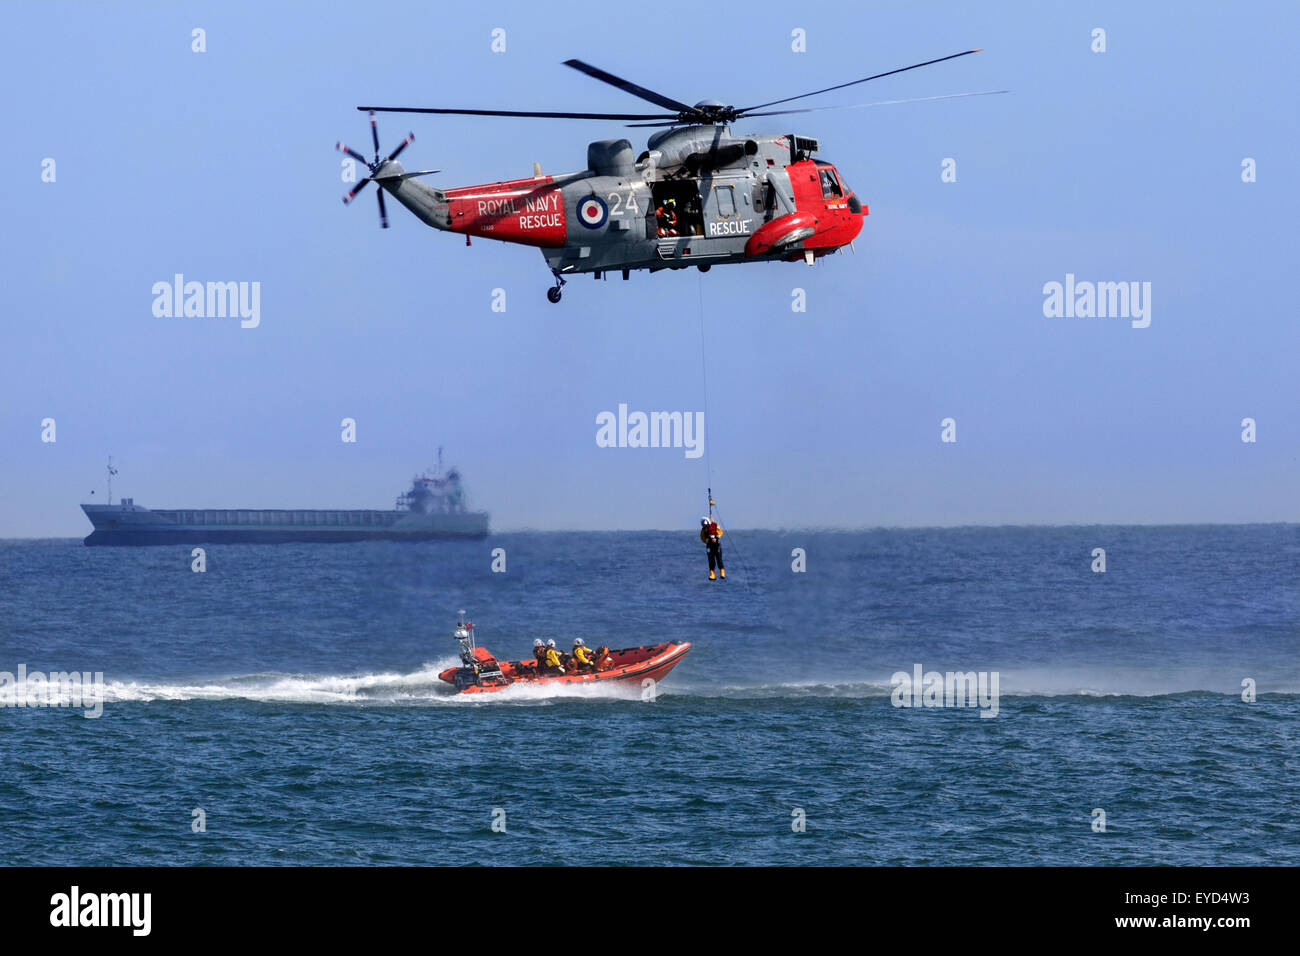 A Royal Navy Sea King Search and Rescue helicopter lifting a casualty from a small boat in a busy shipping lane. - Stock Image